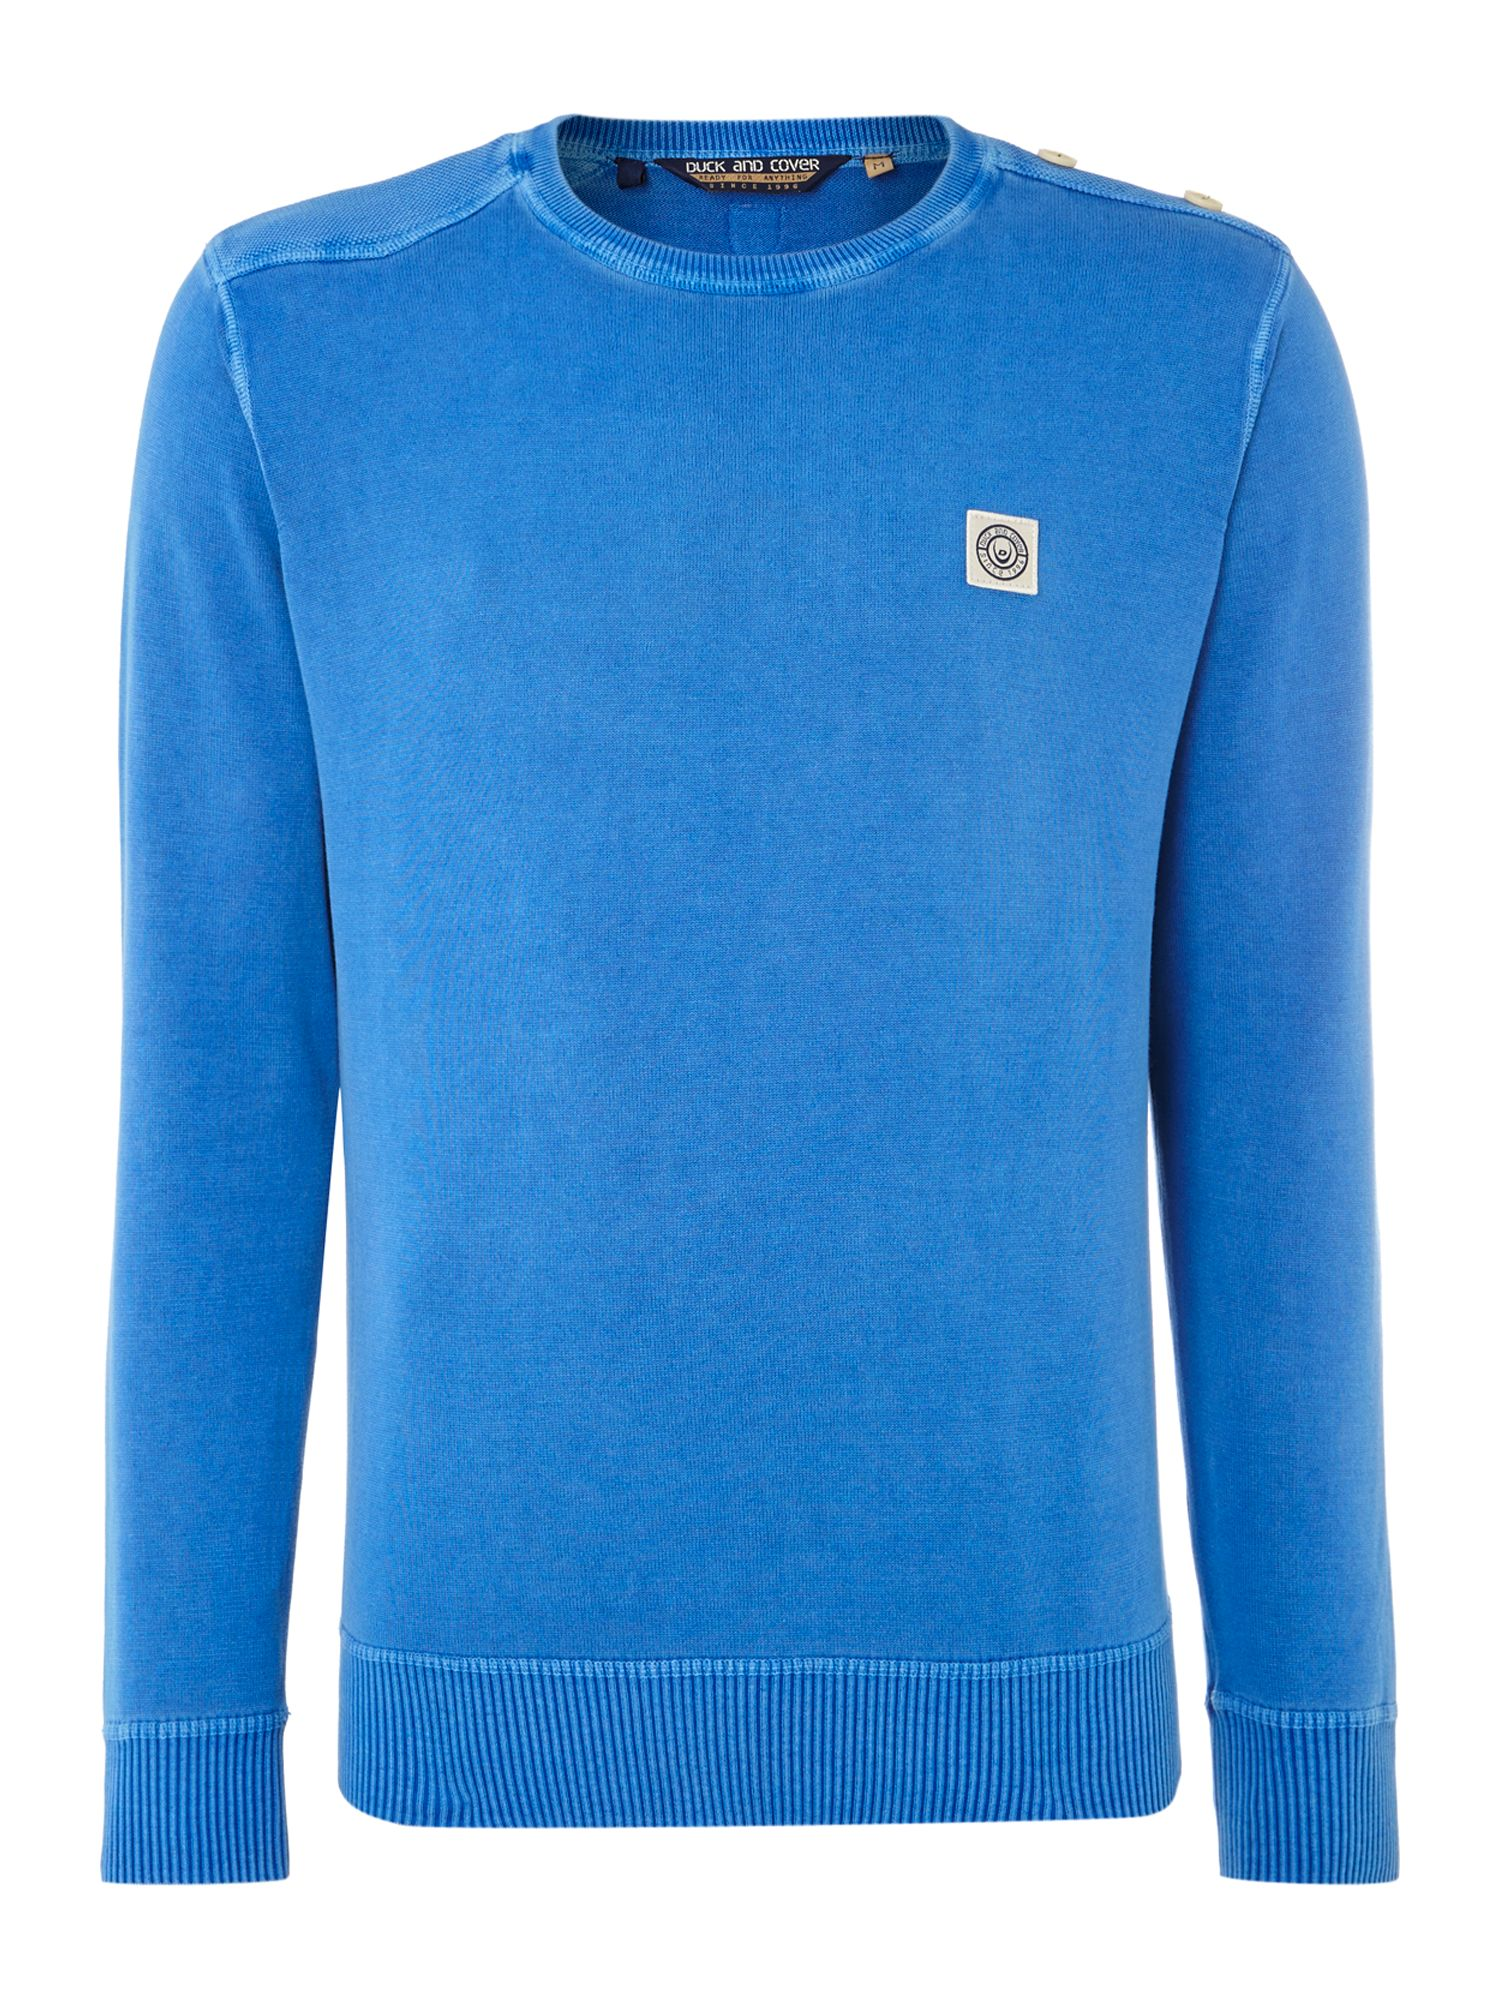 Thorne cotton crew neck jumper